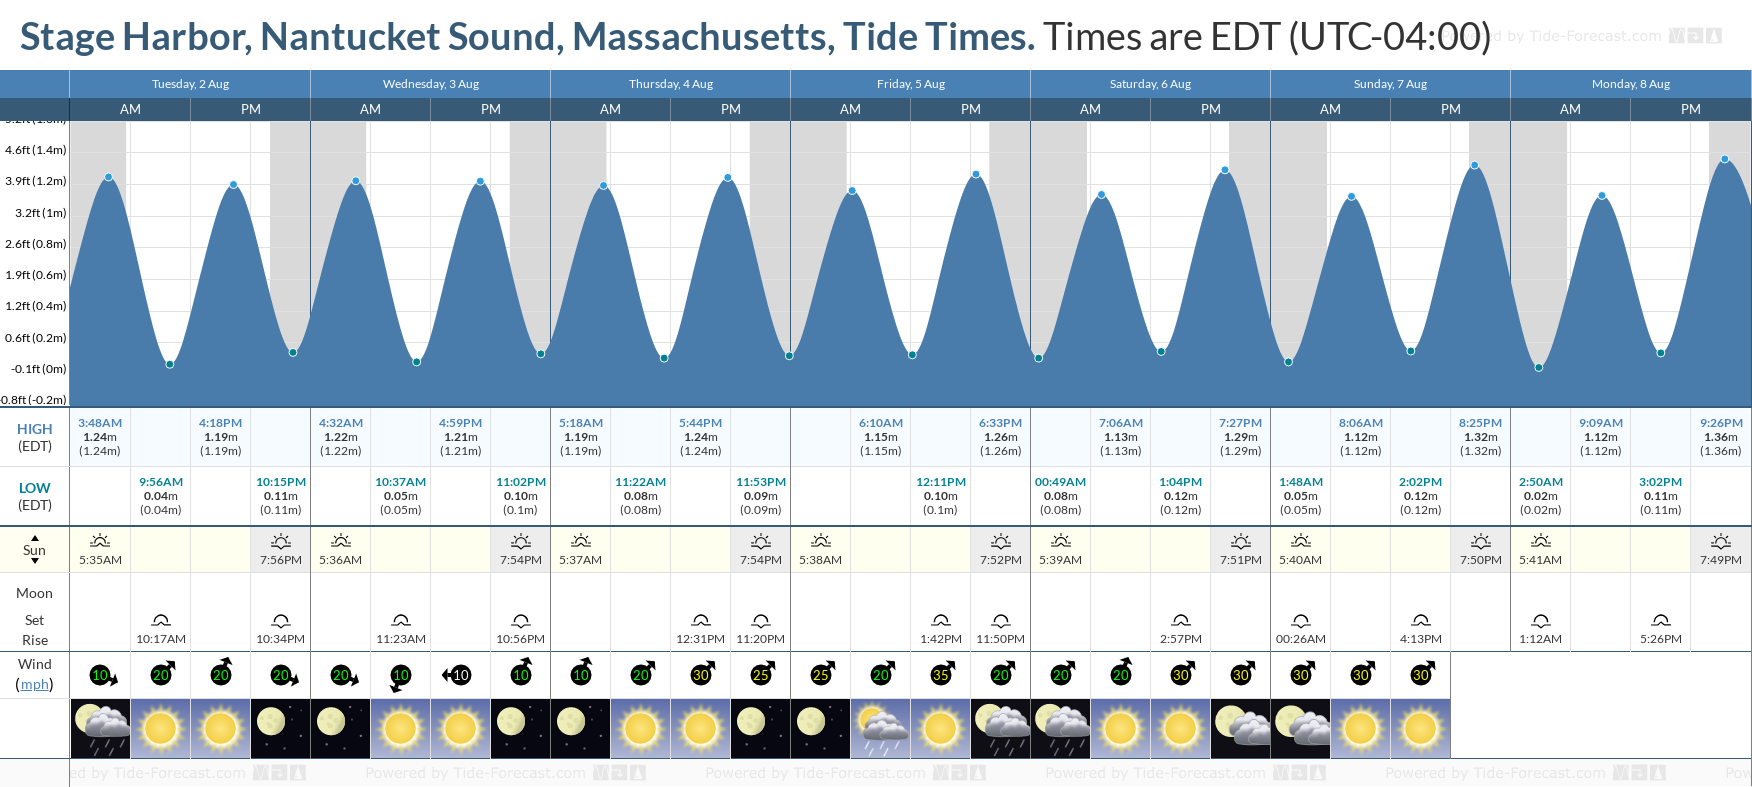 Stage Harbor, Nantucket Sound, Massachusetts Tide Chart including high and low tide tide times for the next 7 days